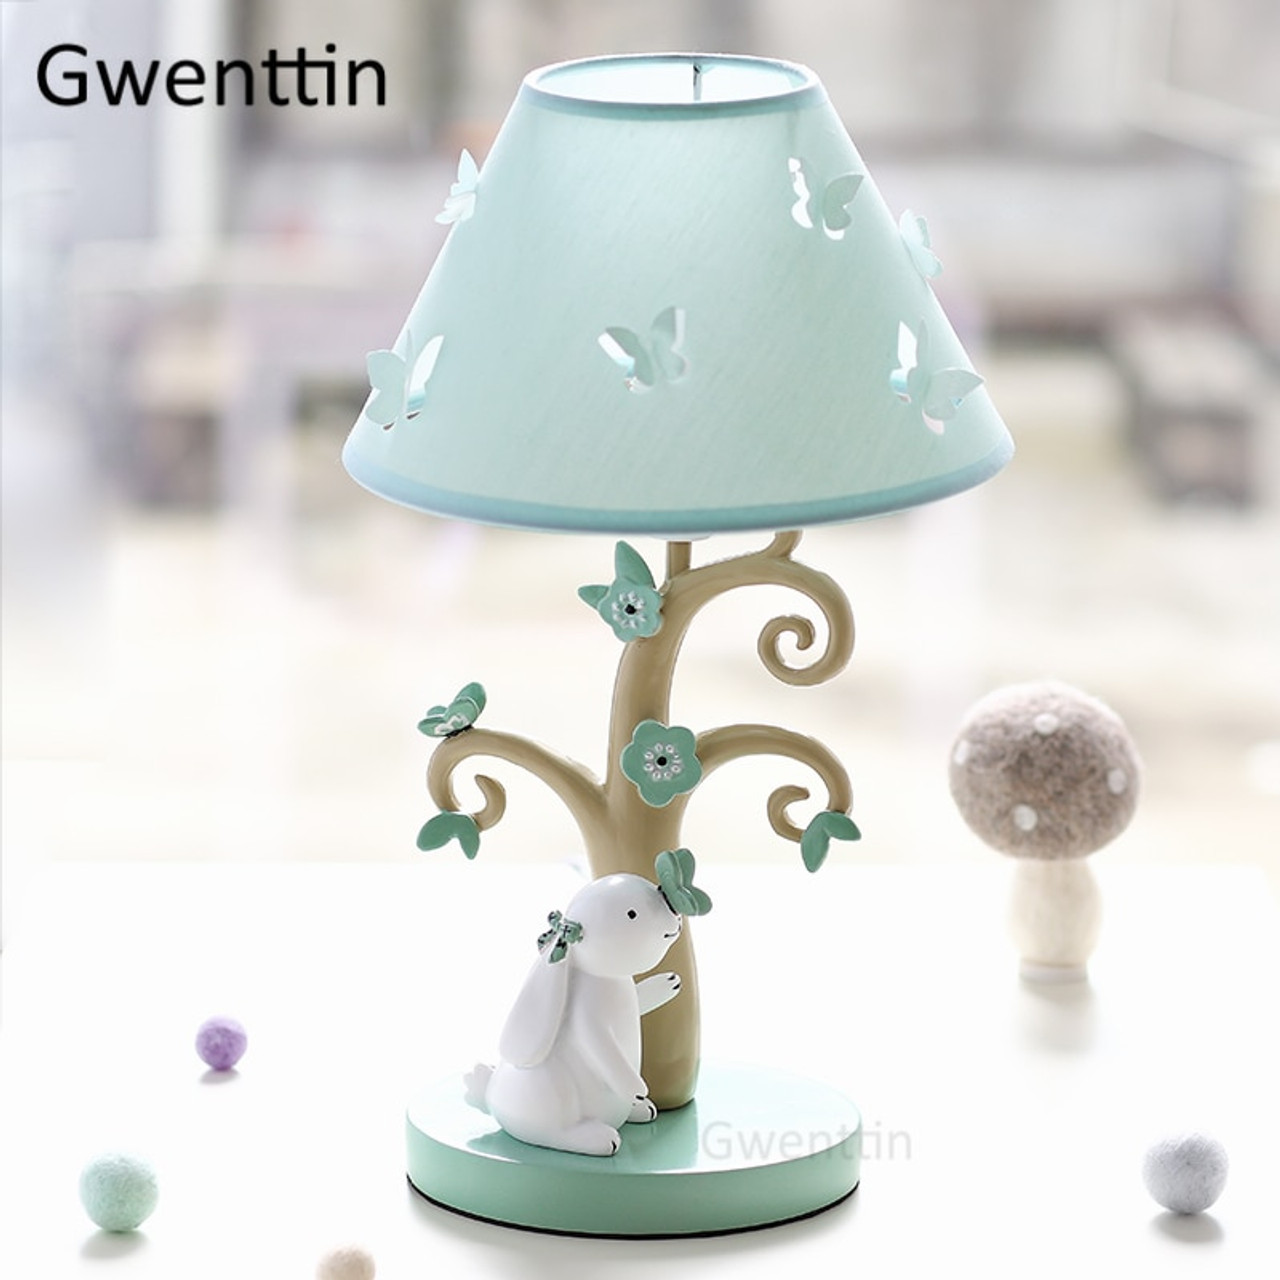 Modern Cute Fabric Table Lamps Rabbit Lamp Led Stand Light Fixtures Desk Lights For Kids Baby Girl Bedroom Luminaire Home Deco Onshopdeals Com